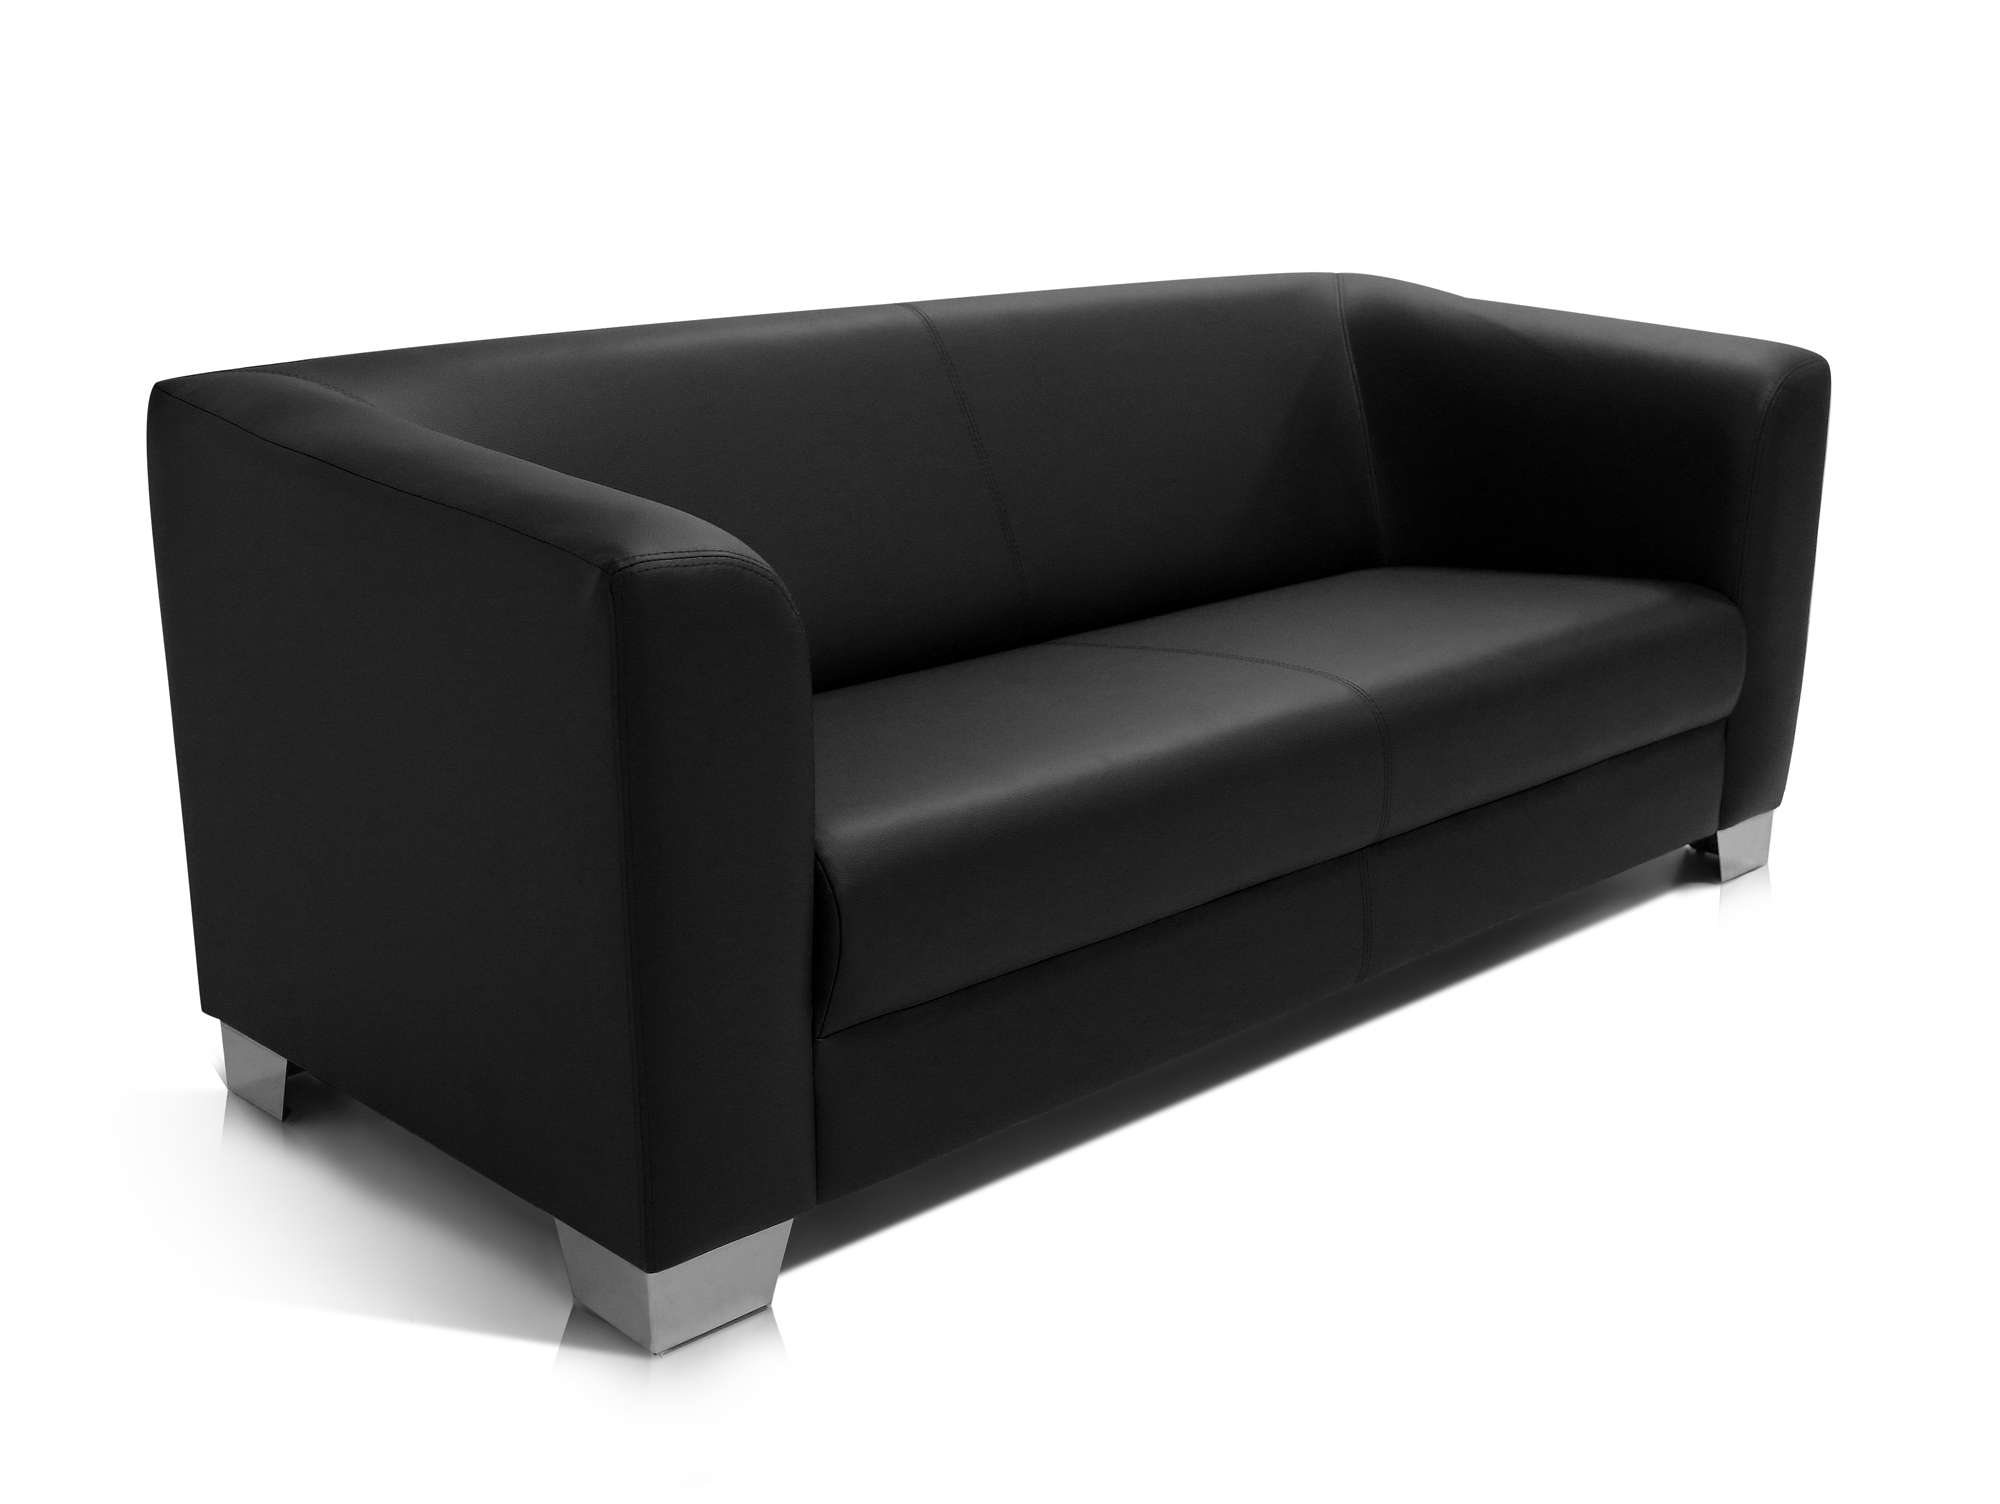 chicago 3 sitzer sofa ledersofa schwarz. Black Bedroom Furniture Sets. Home Design Ideas